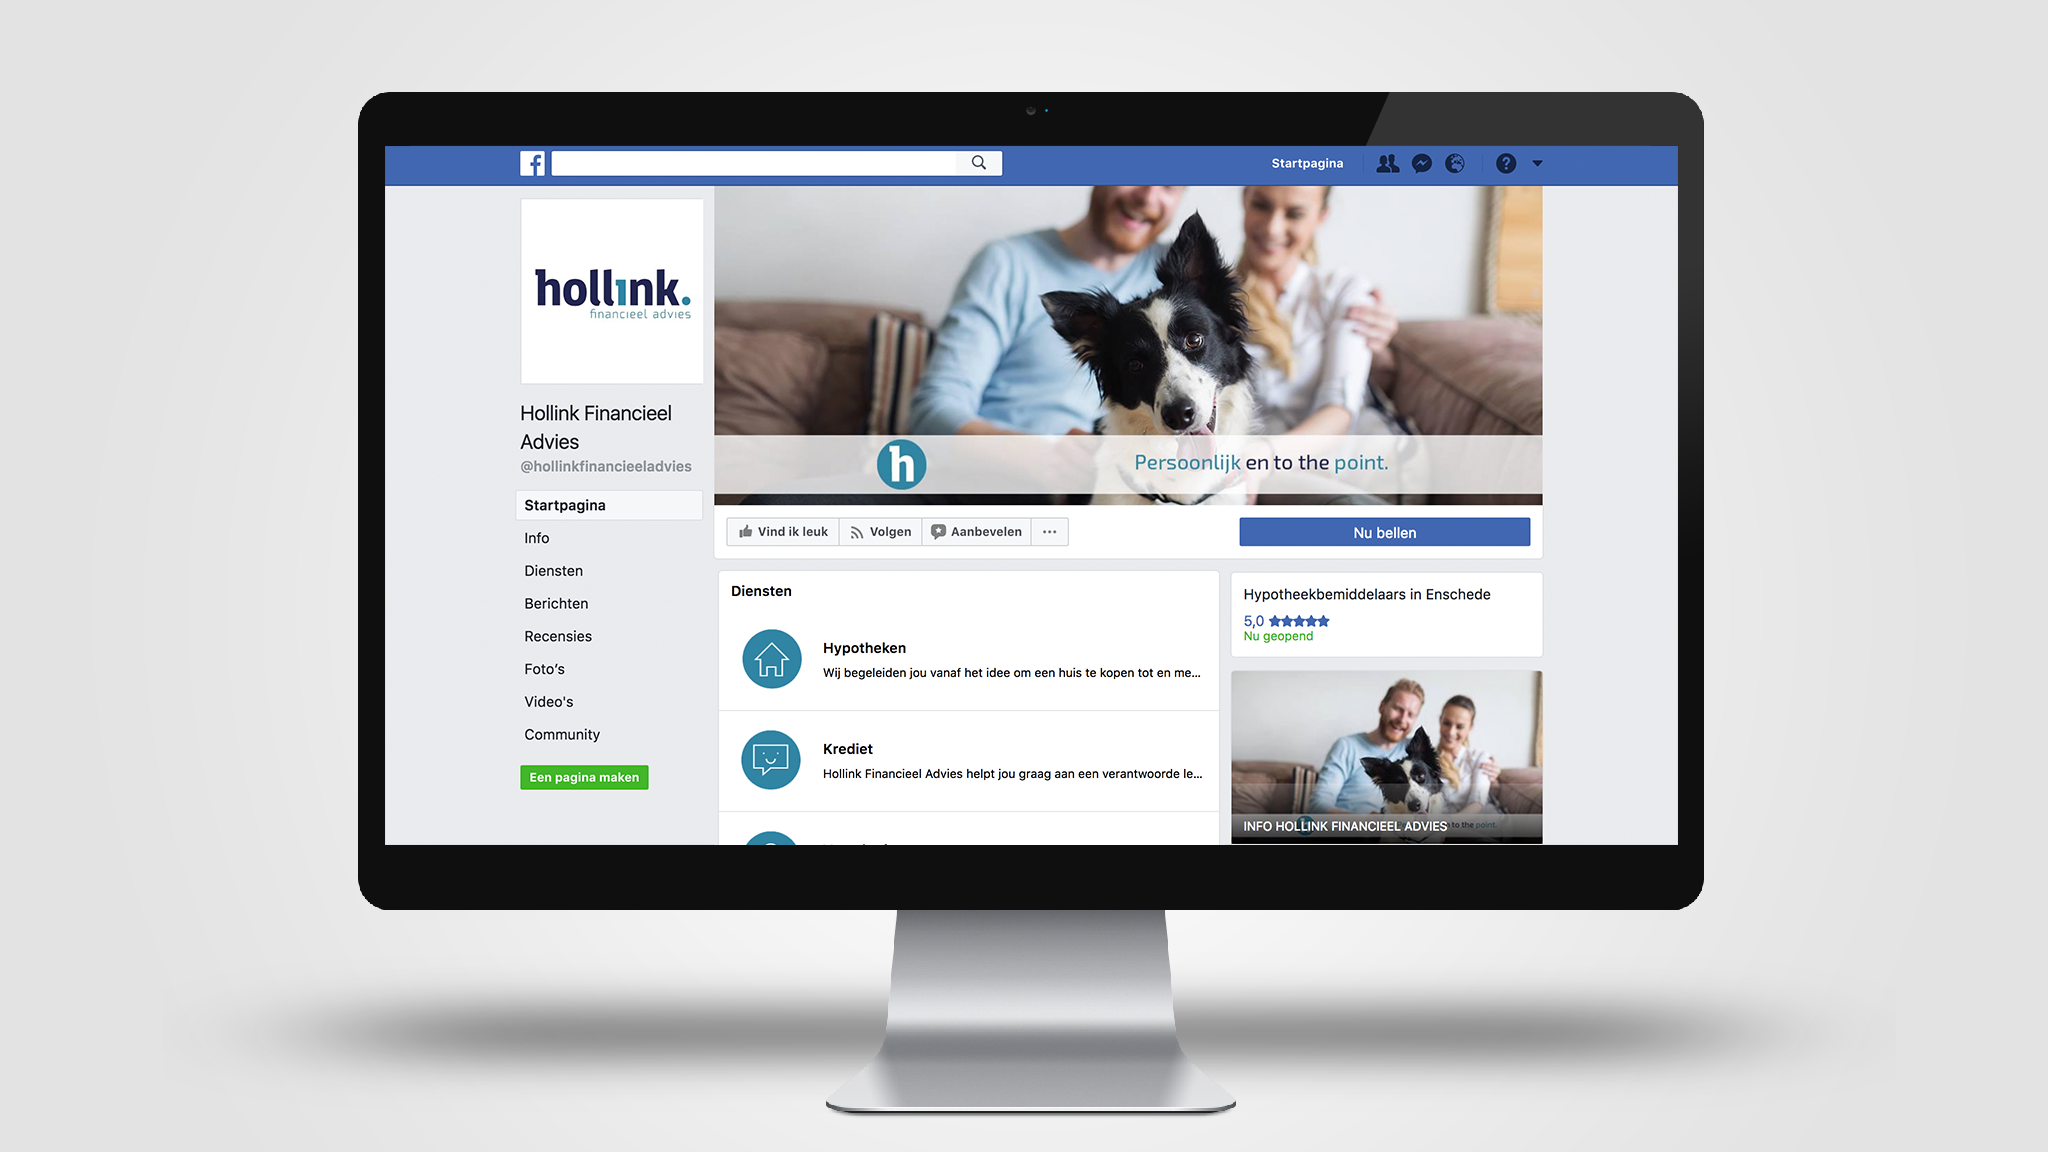 Hollink Financieel Advies | Social Media | SQOOP Online Marketing